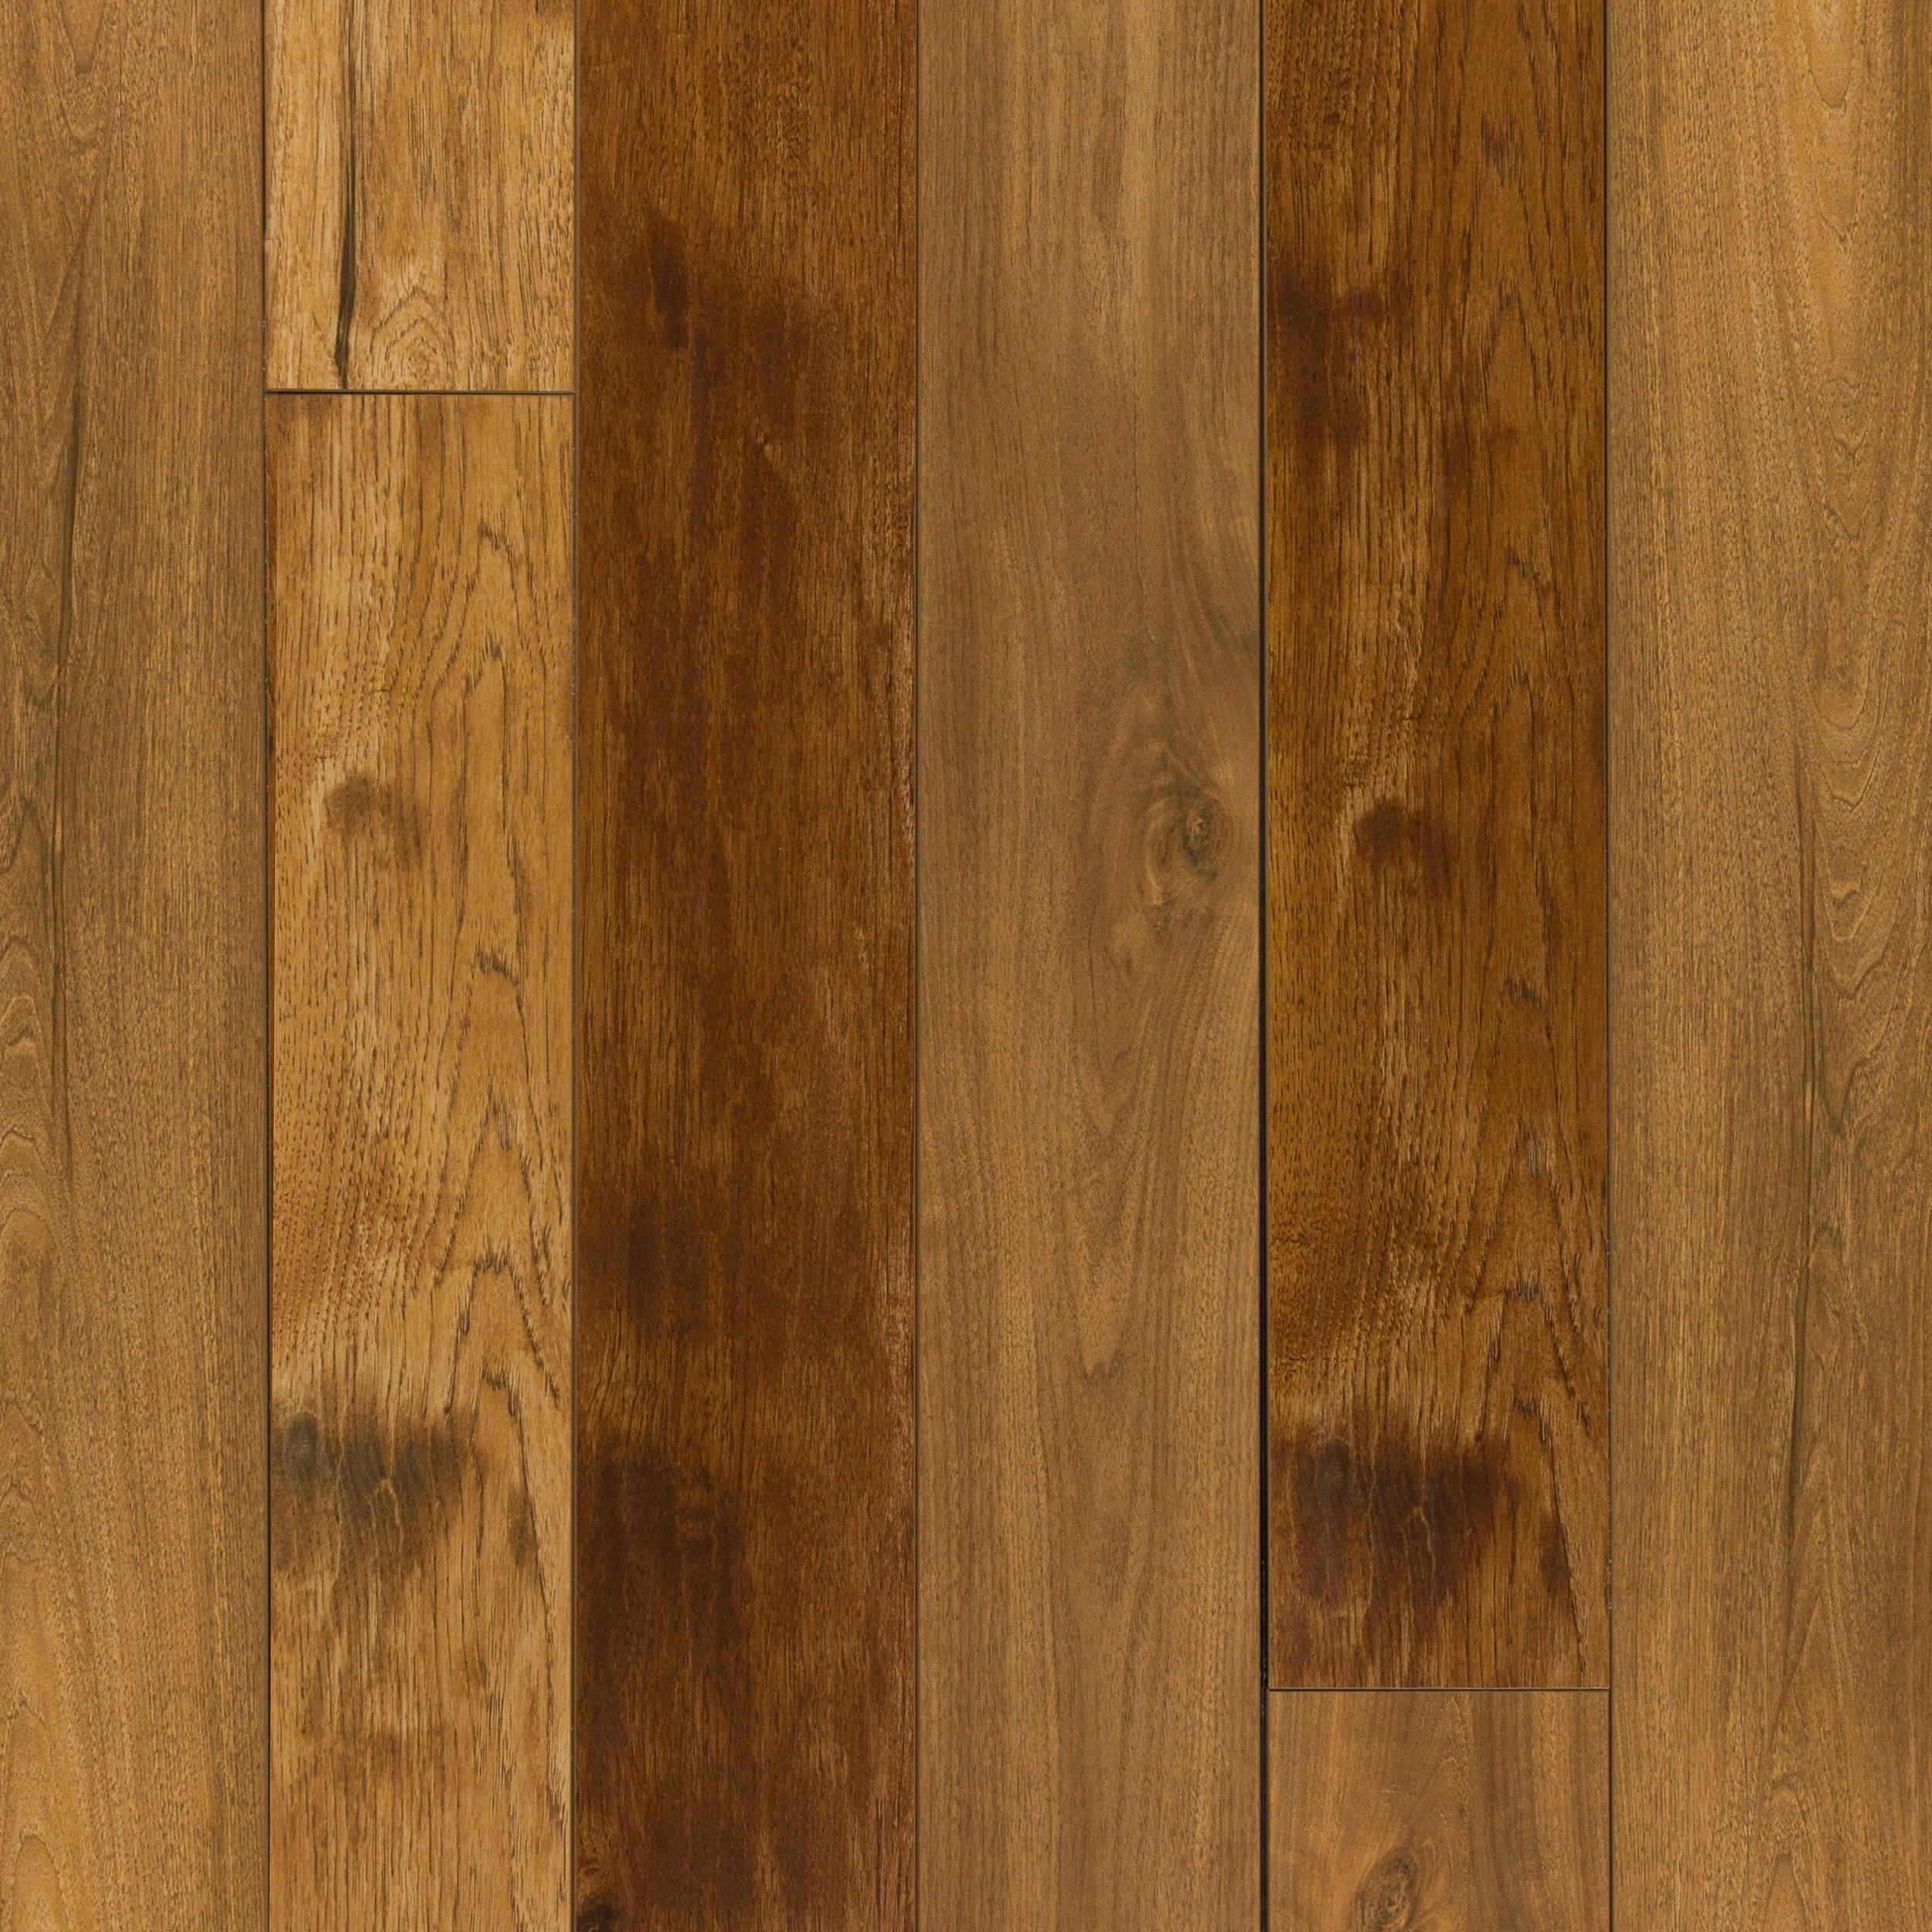 Huntington Hand Scraped Water Resistant Laminate Products